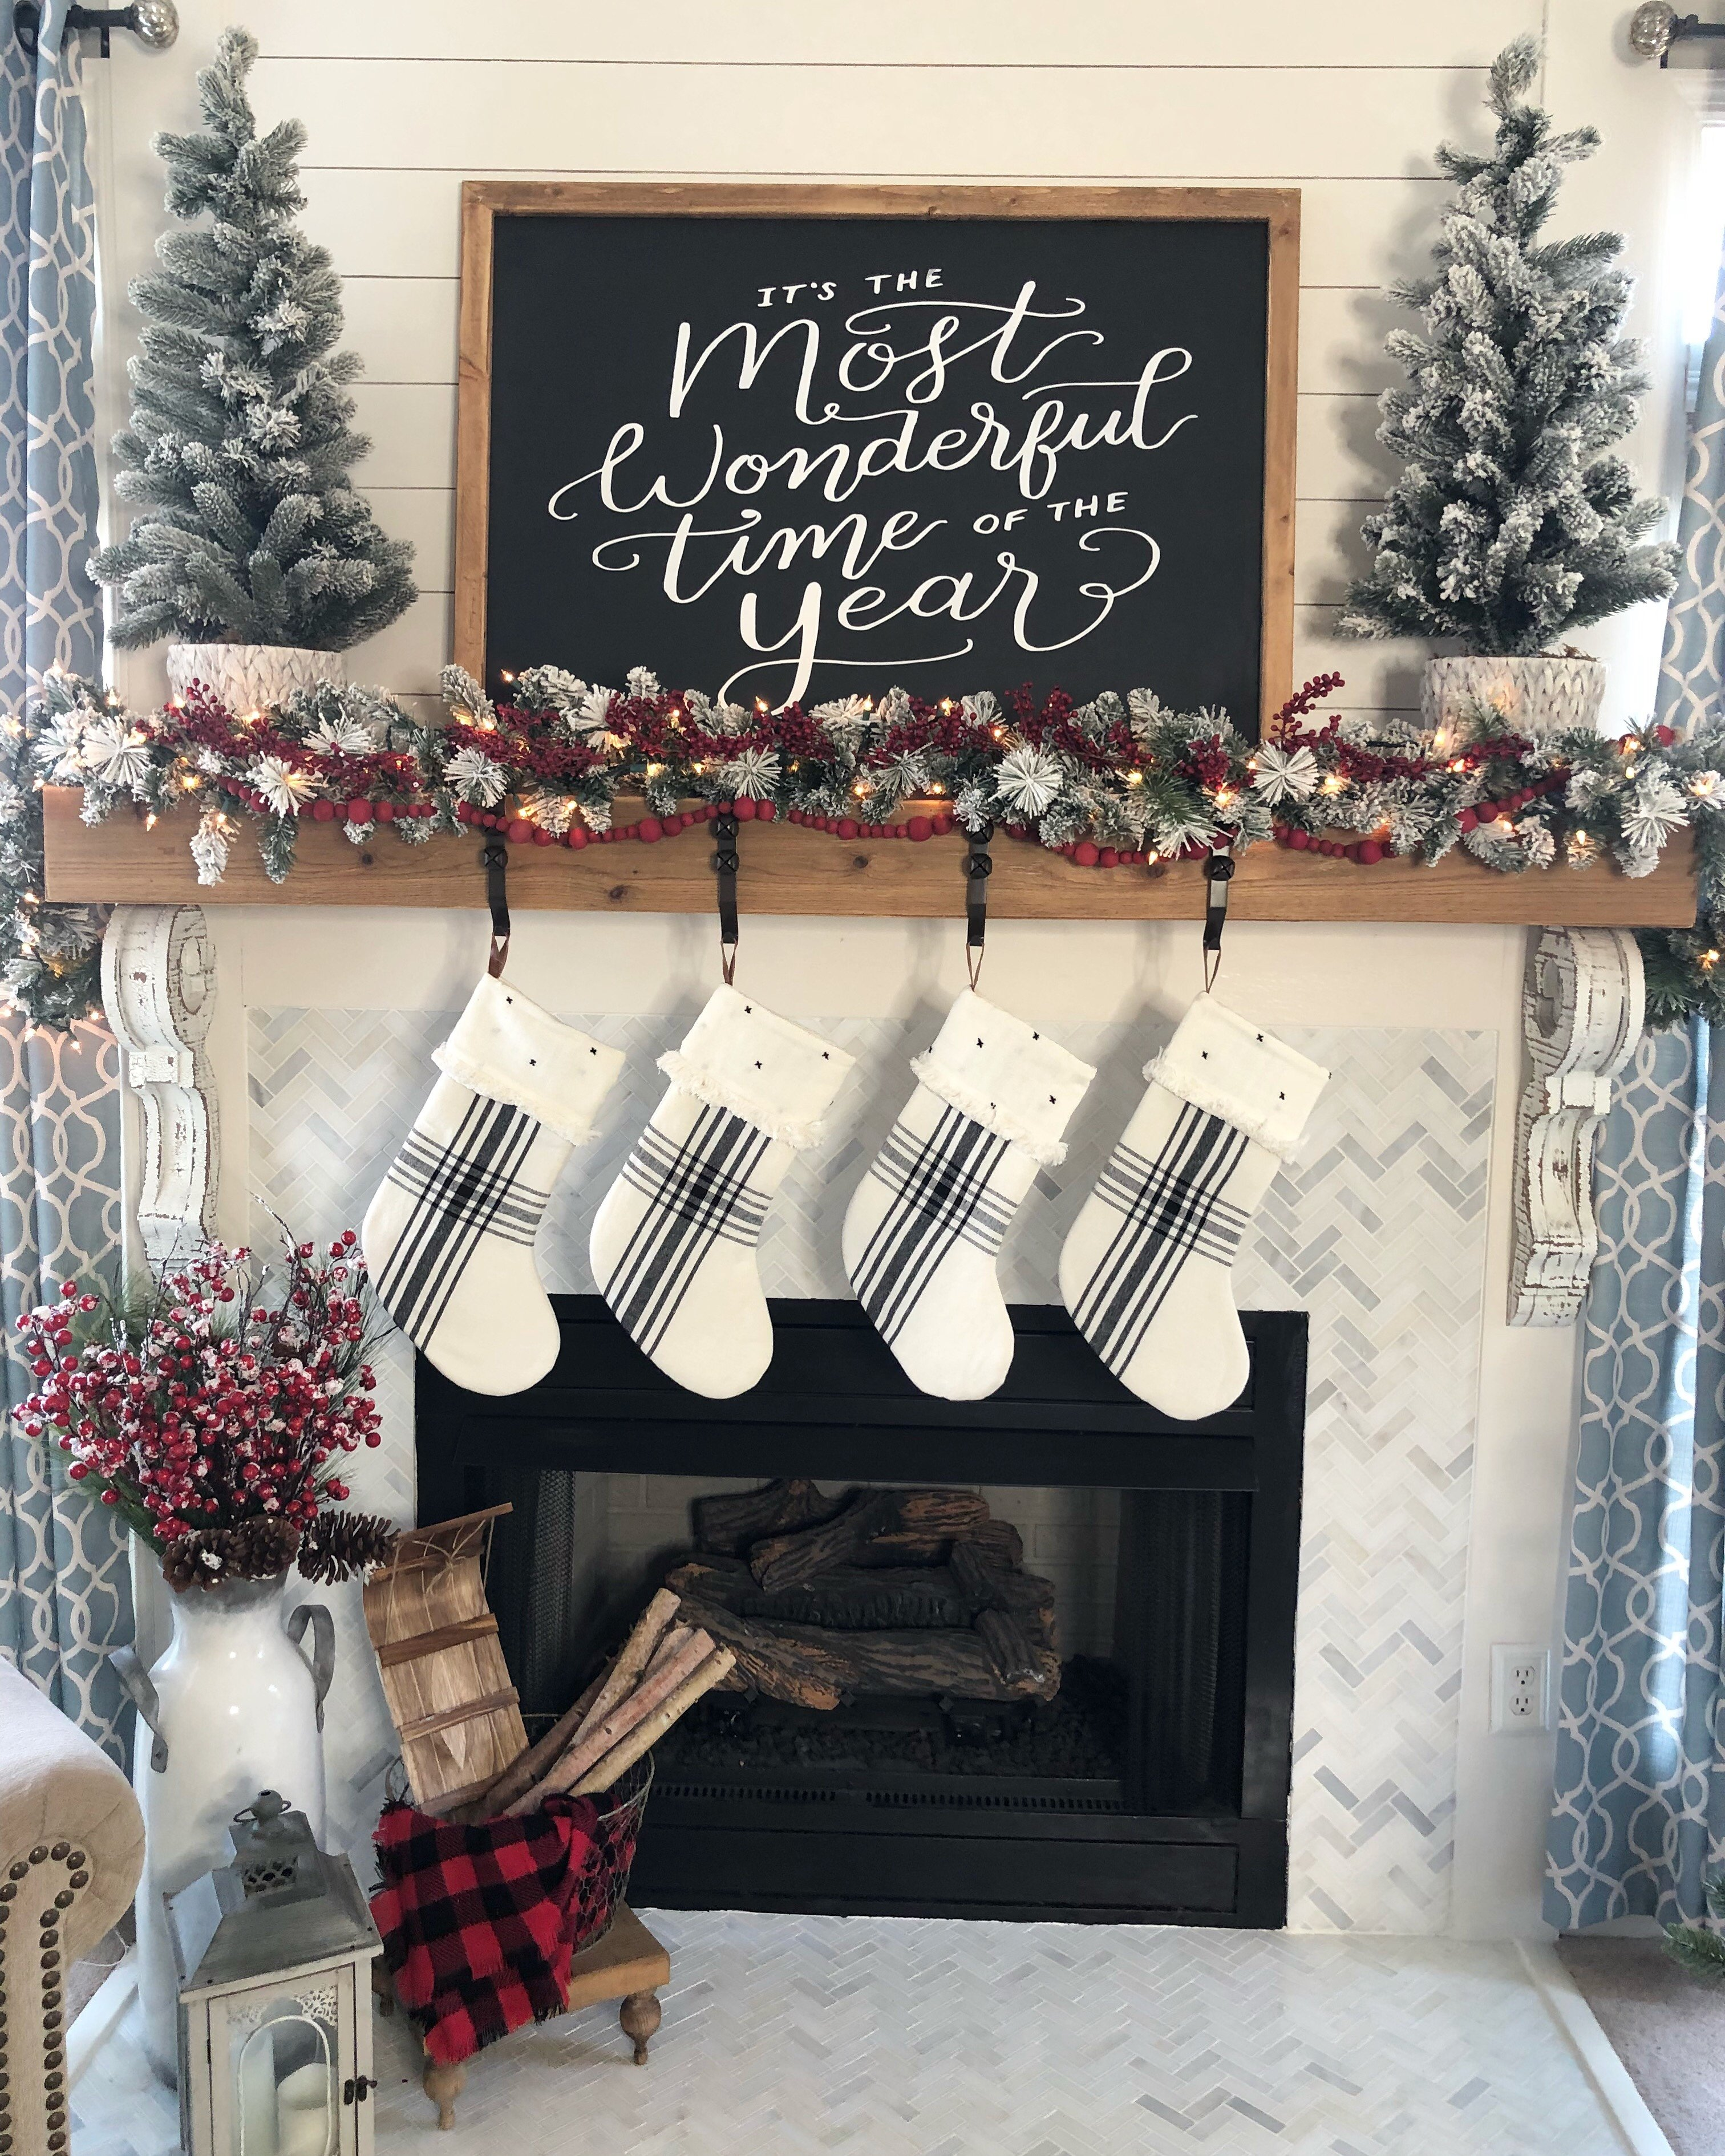 My Christmas fireplace decorations for 2018. Buffalo check, black, reds, white and flocked trees and garland